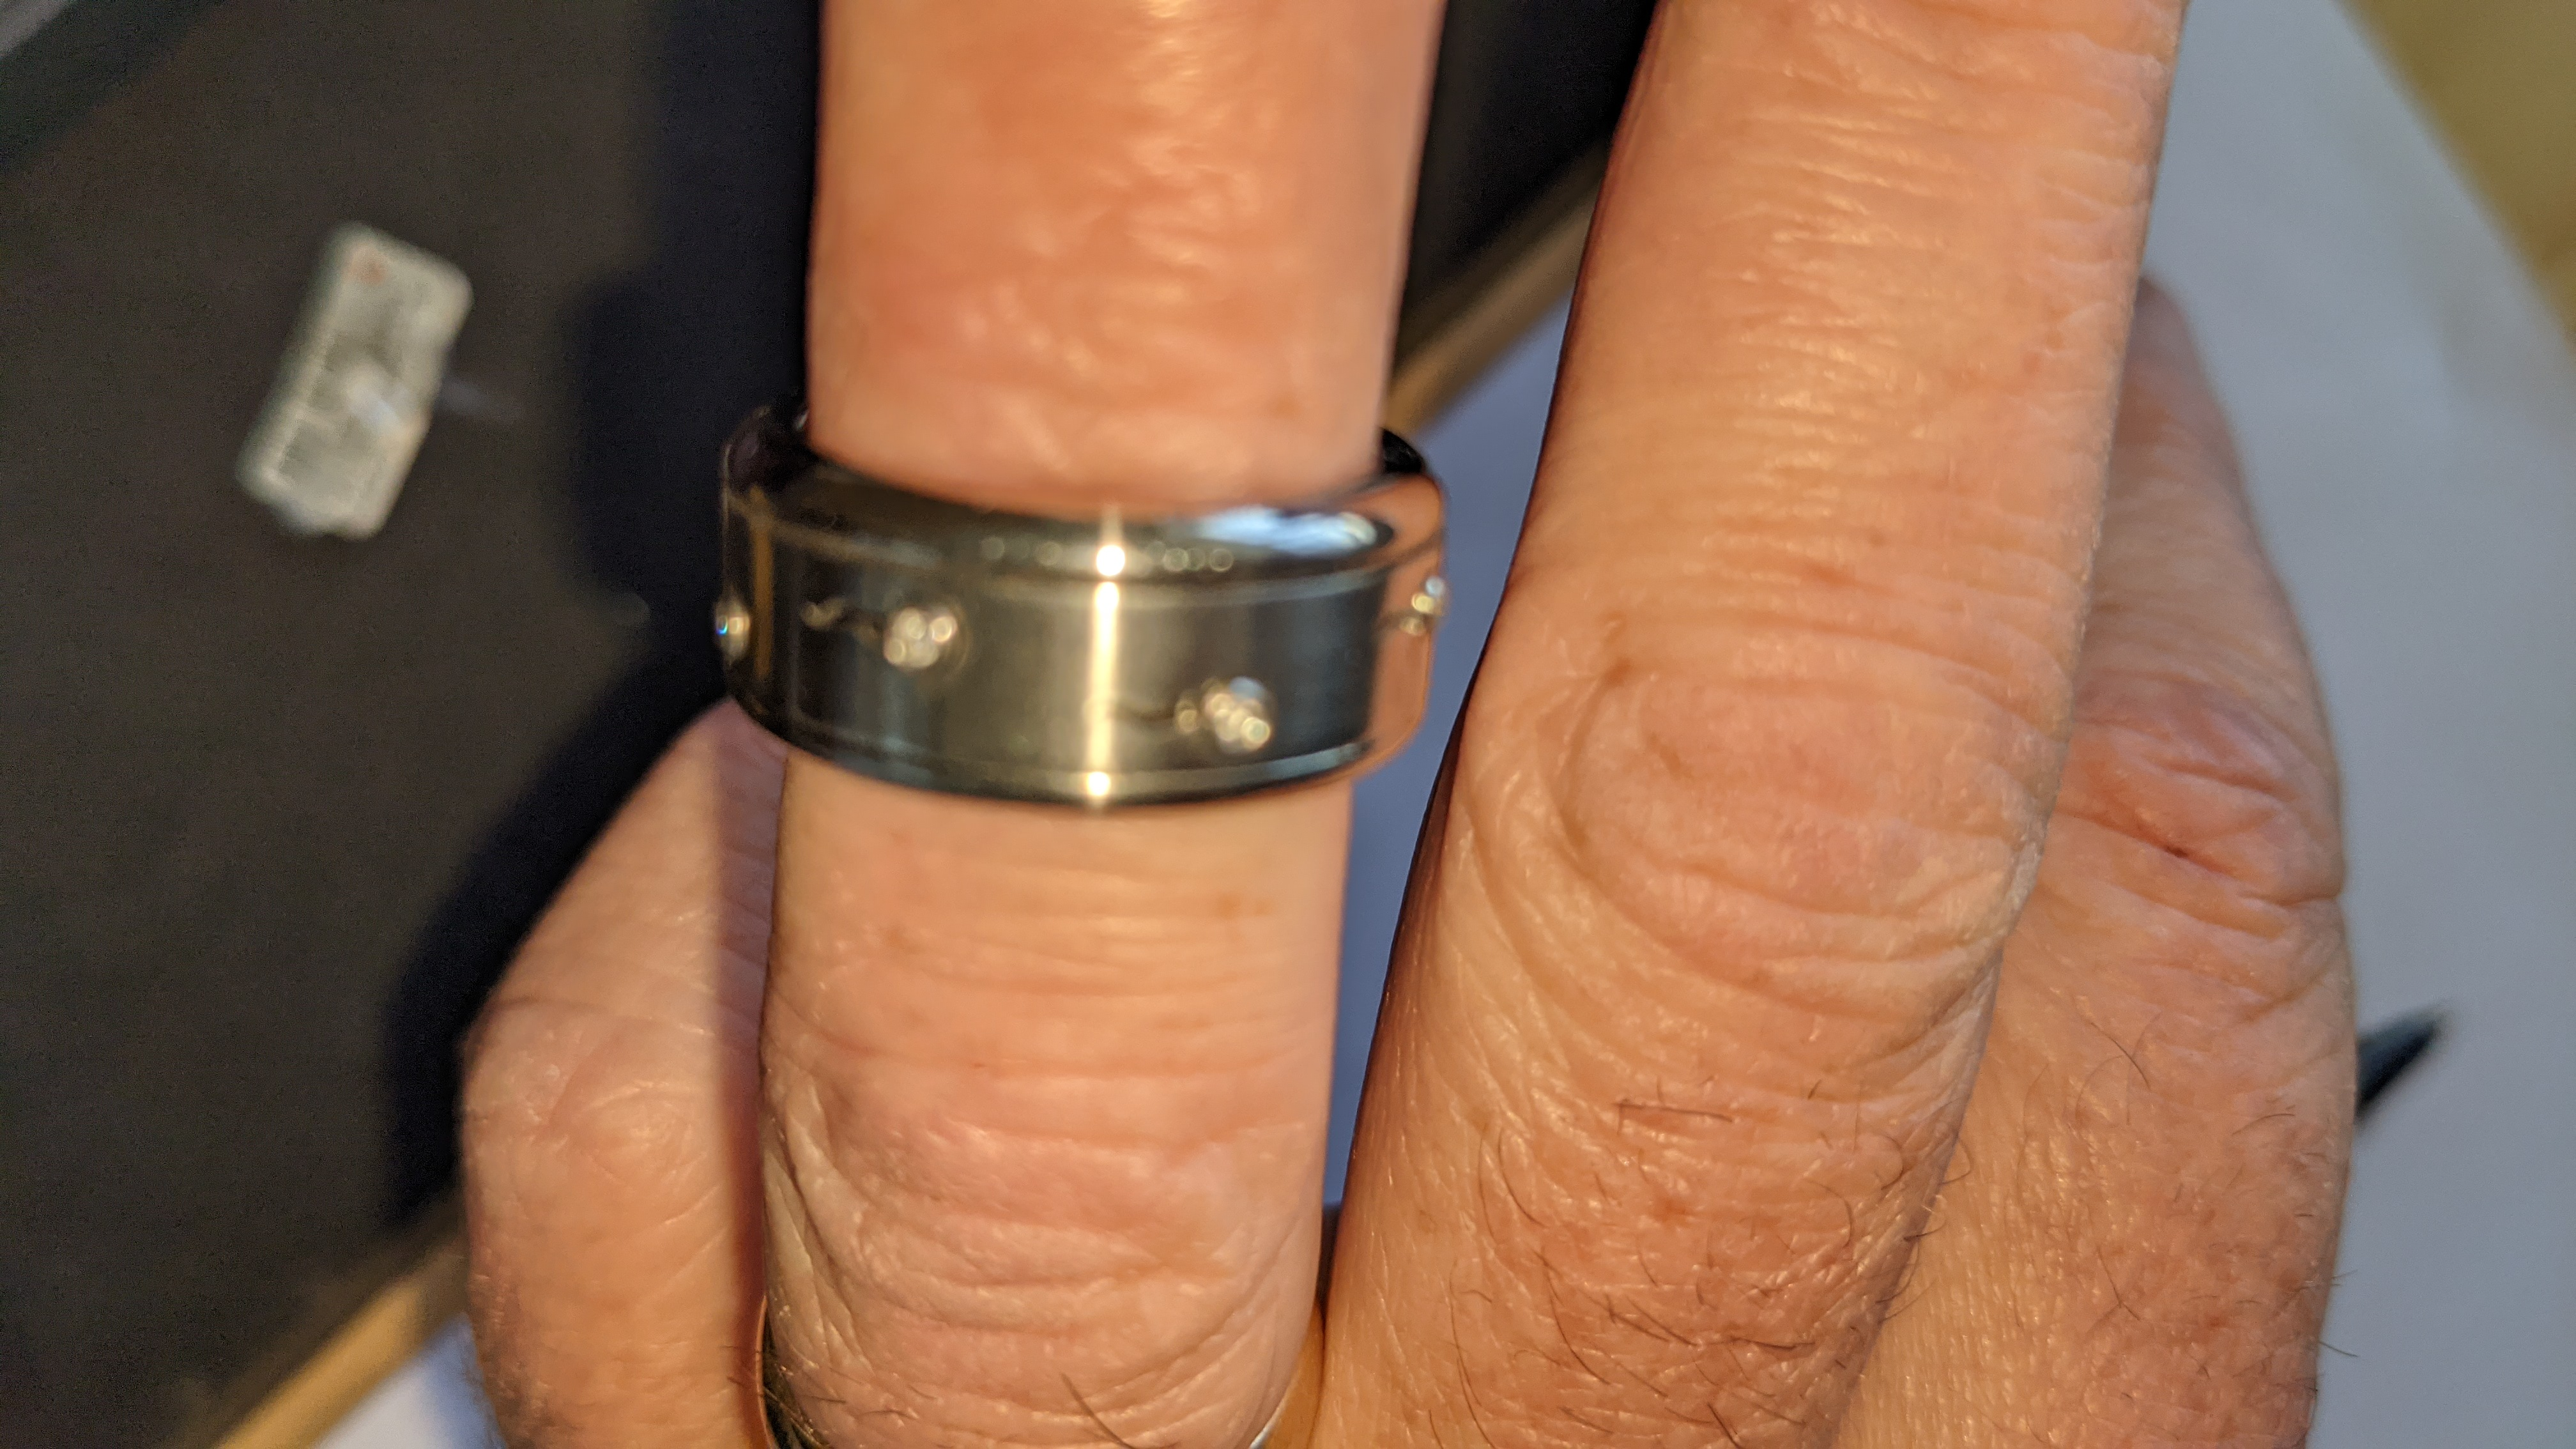 Stainless steel & diamond spin ring RRP £455 - Image 13 of 13